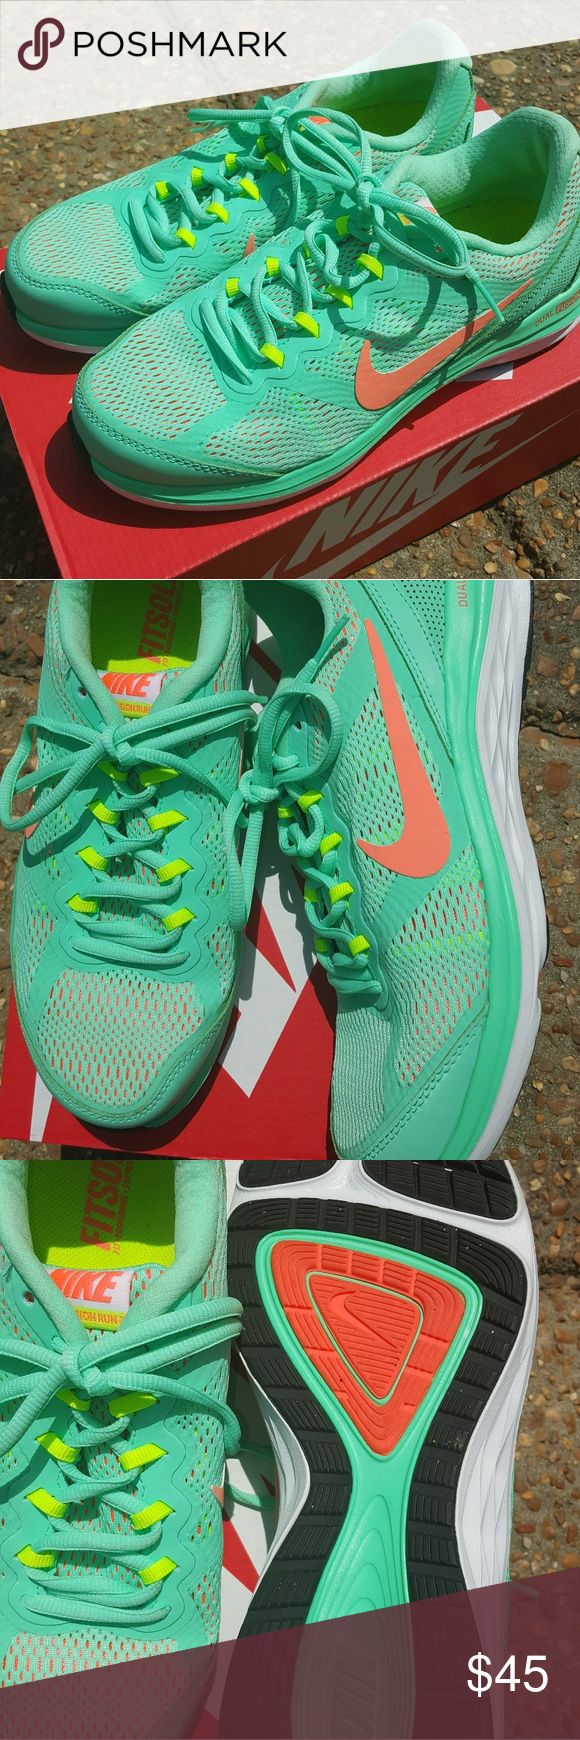 Nike Dual Fusion New like nike for women size 7 great shoes for the price. Nike Shoes Sneakers